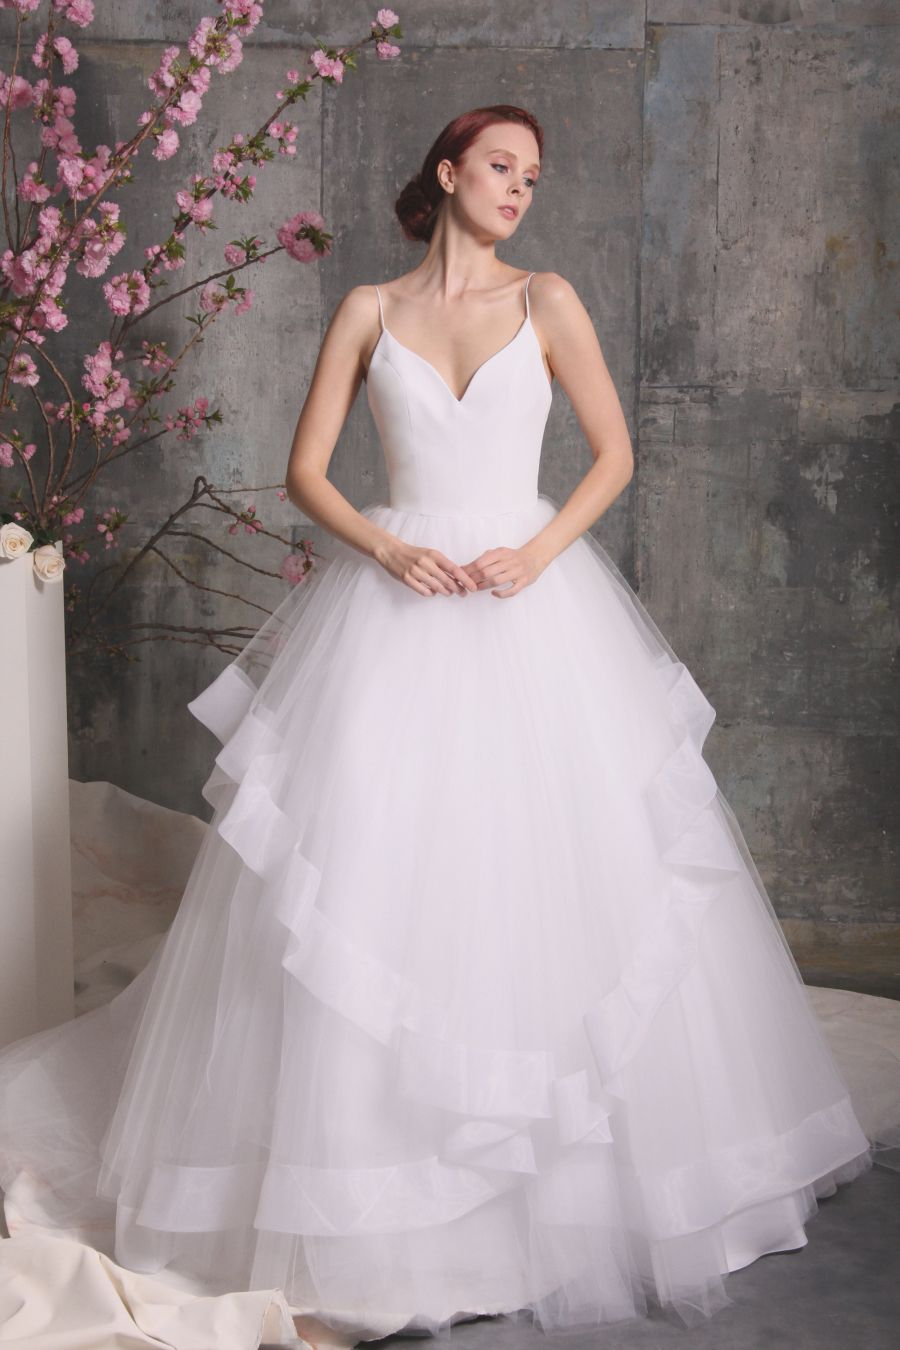 Christian Siriano S Romantic Spring 2018 Collection Has A Dress For Every Bride Christian Siriano Wedding Dresses Wedding Dresses Strapless Bridal Collection